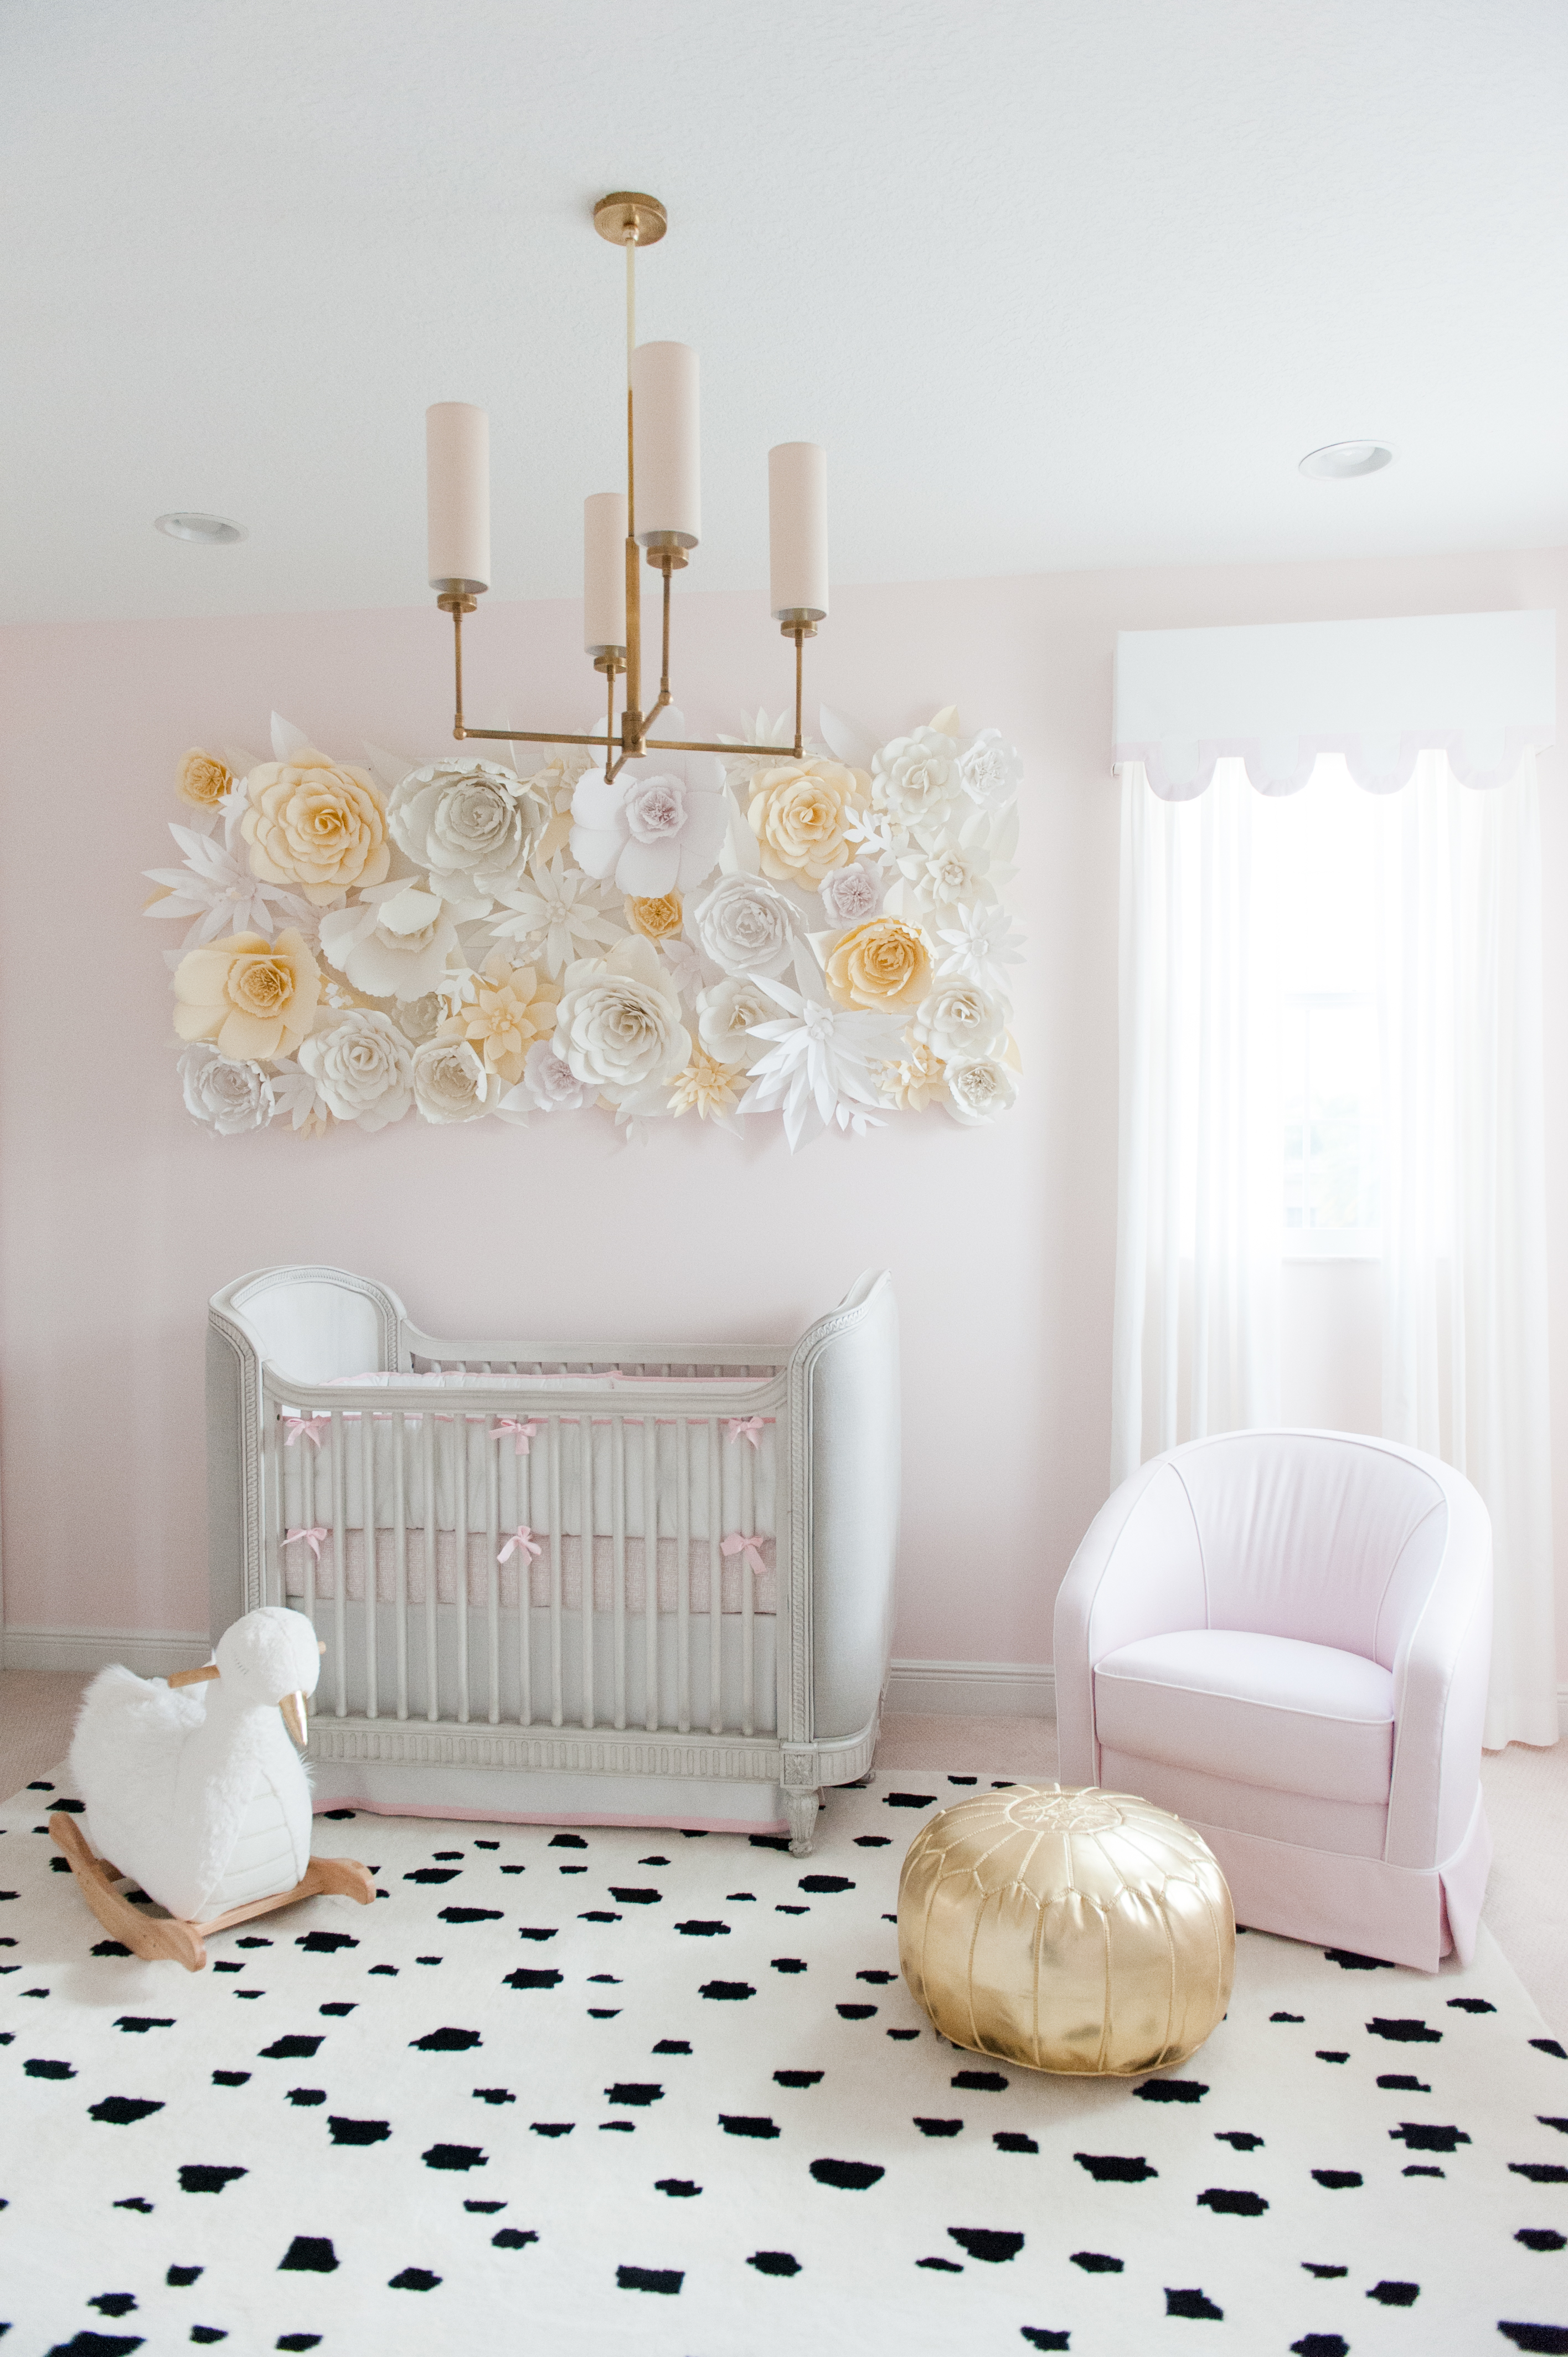 Pink and Gold Swan-Inspired Nursery